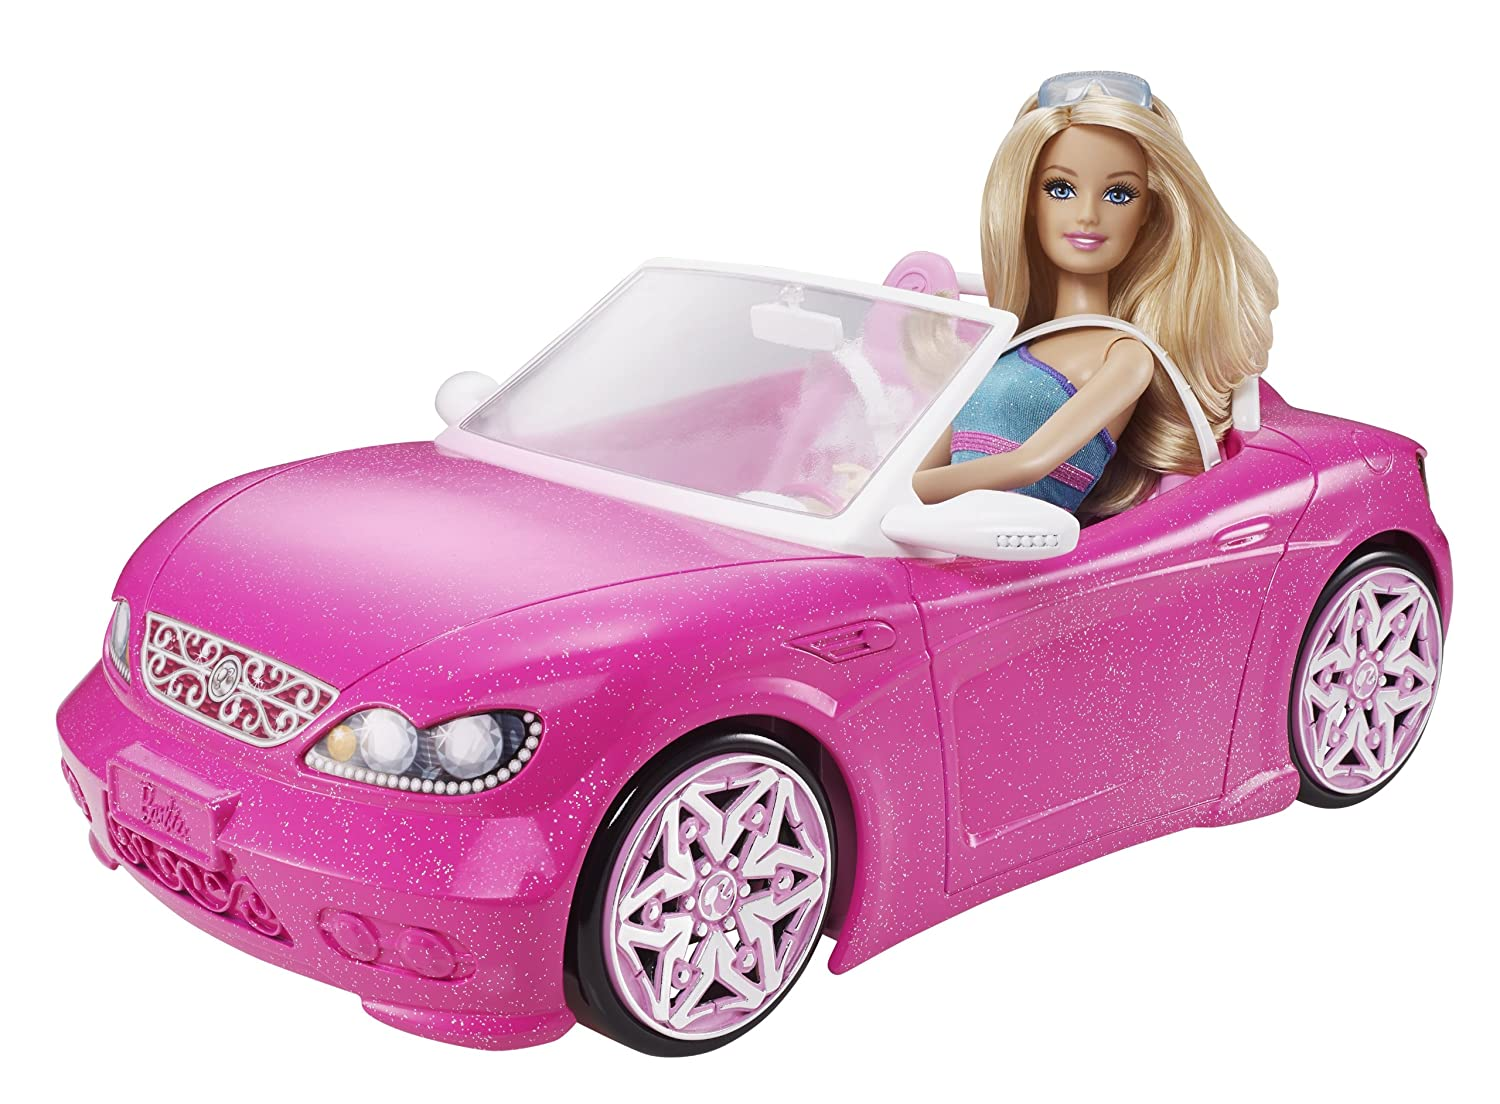 amazoncom barbie glam convertible toys games